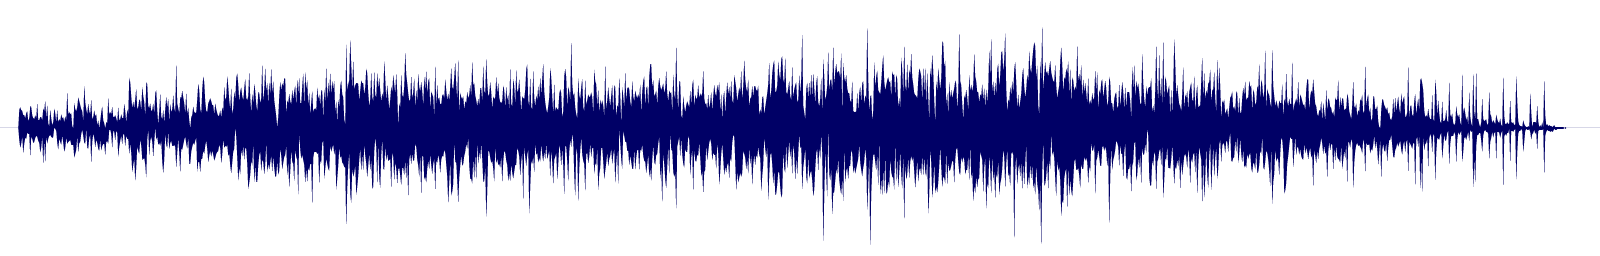 waveform of track #143373